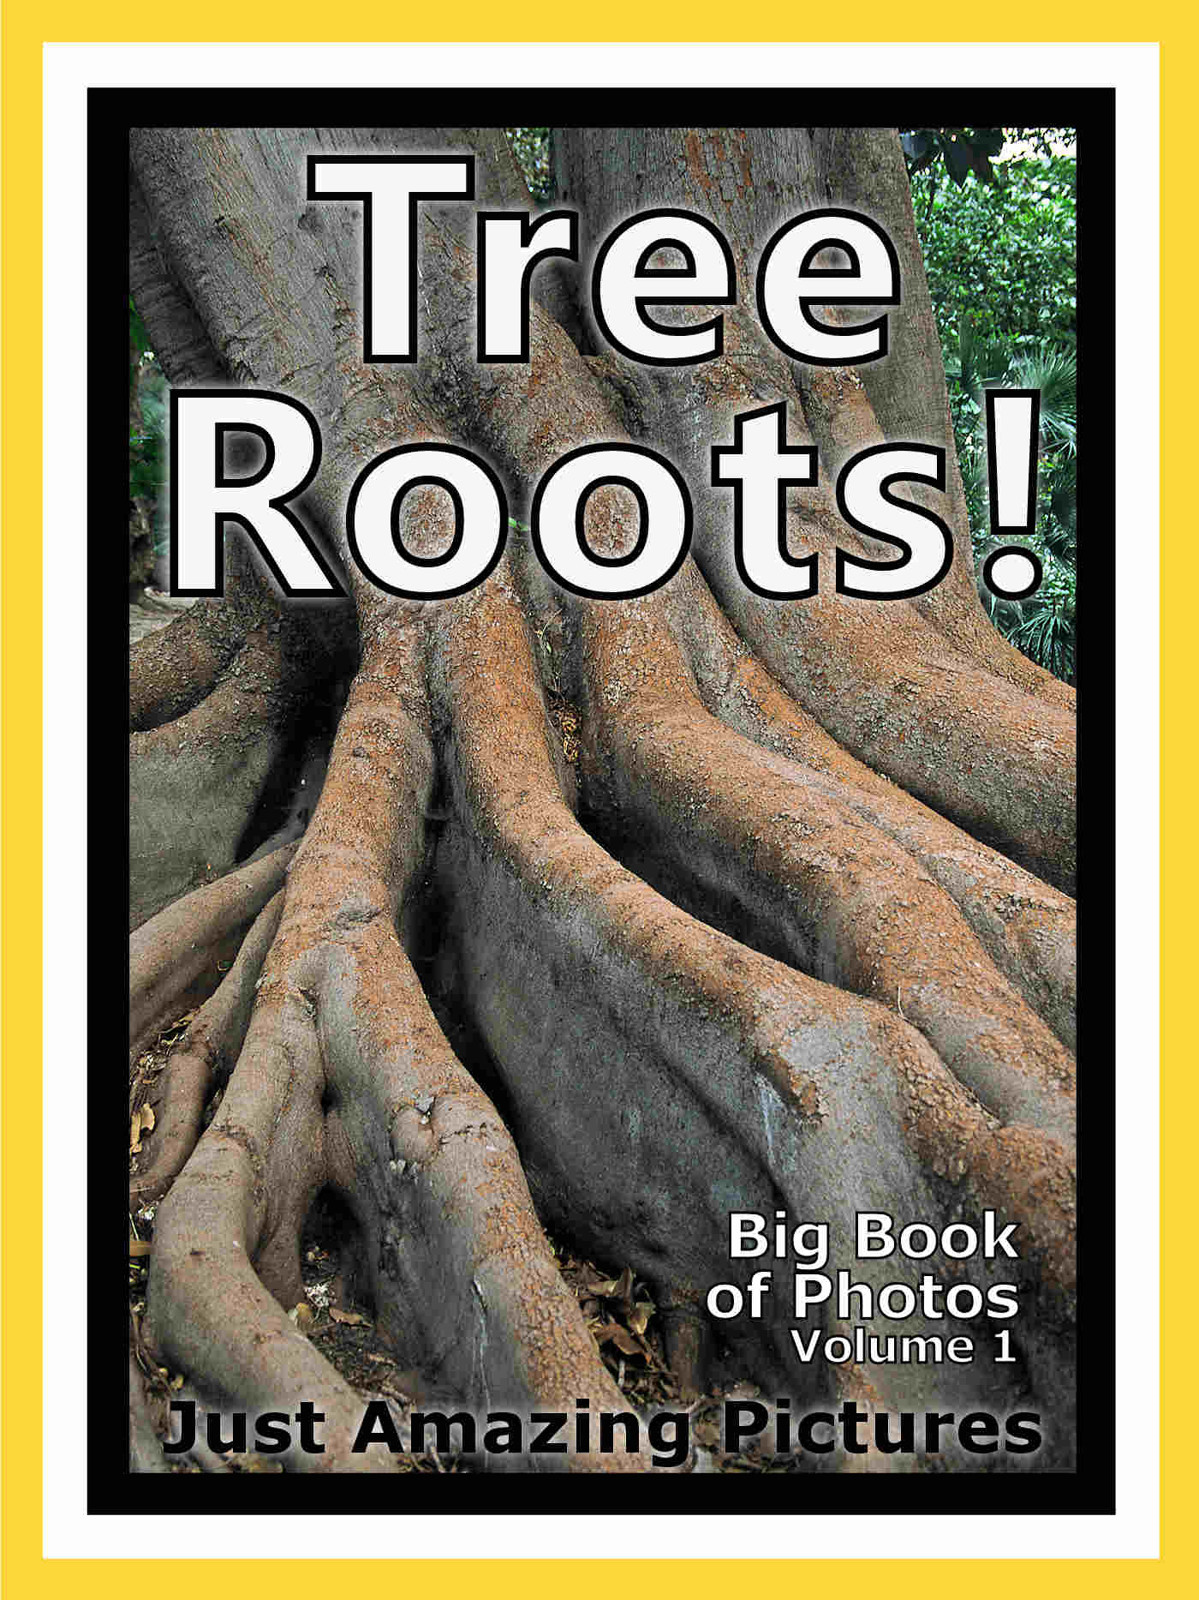 Just Tree Root Photos! Big Book of Photographs & Pictures of Tree Roots, Vol. 1